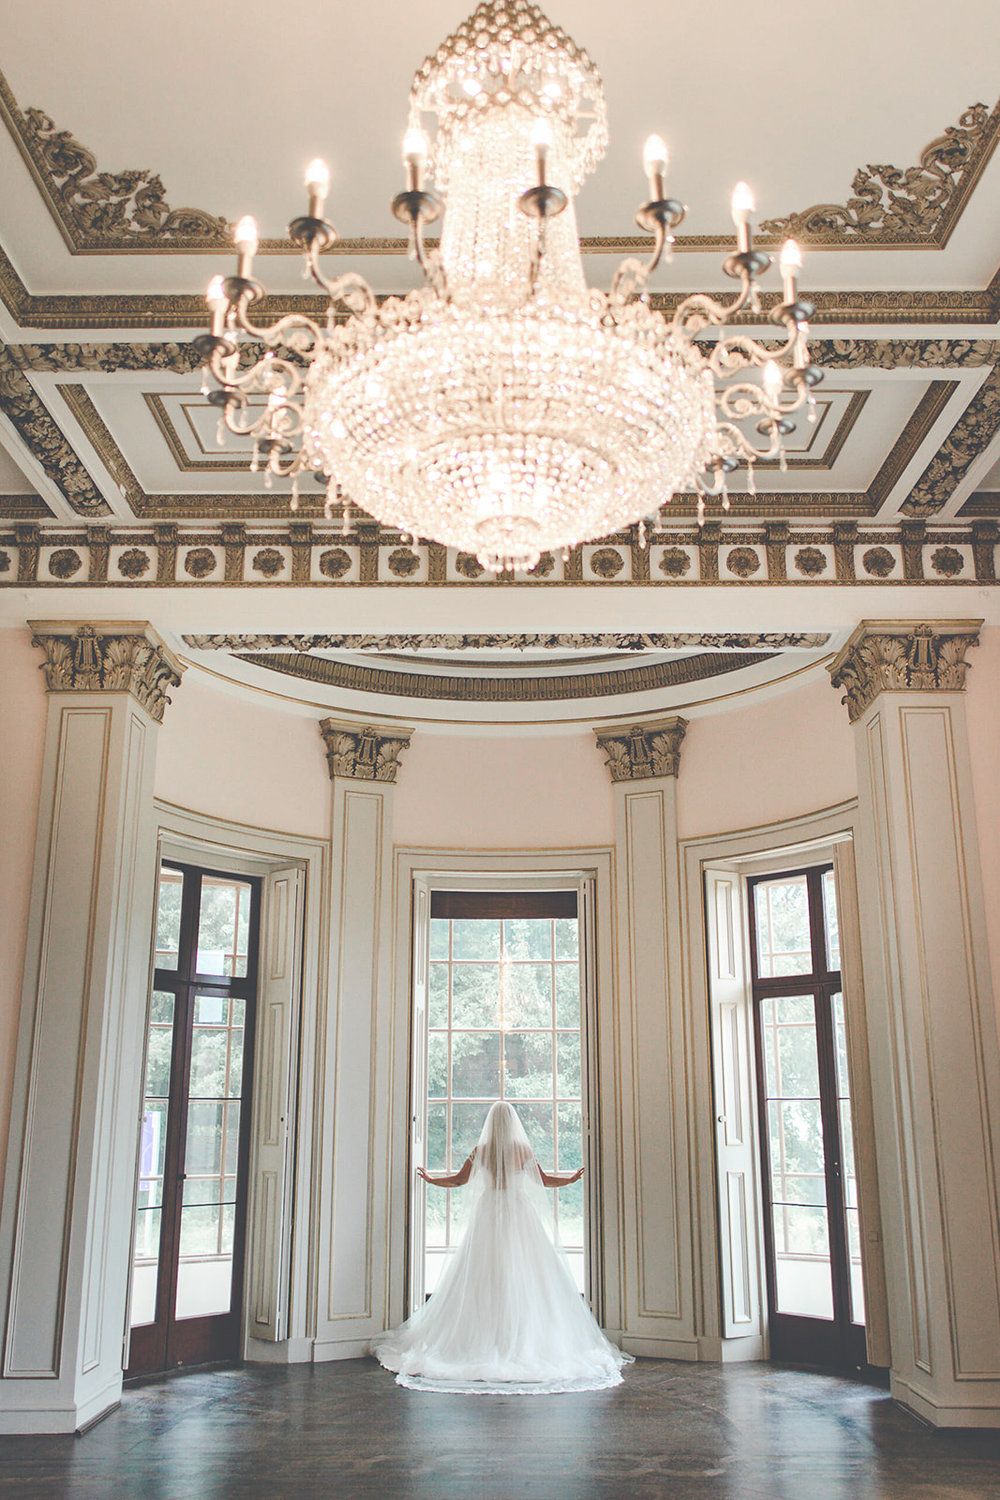 Gunnersbury Park Weddings - Drawing Room